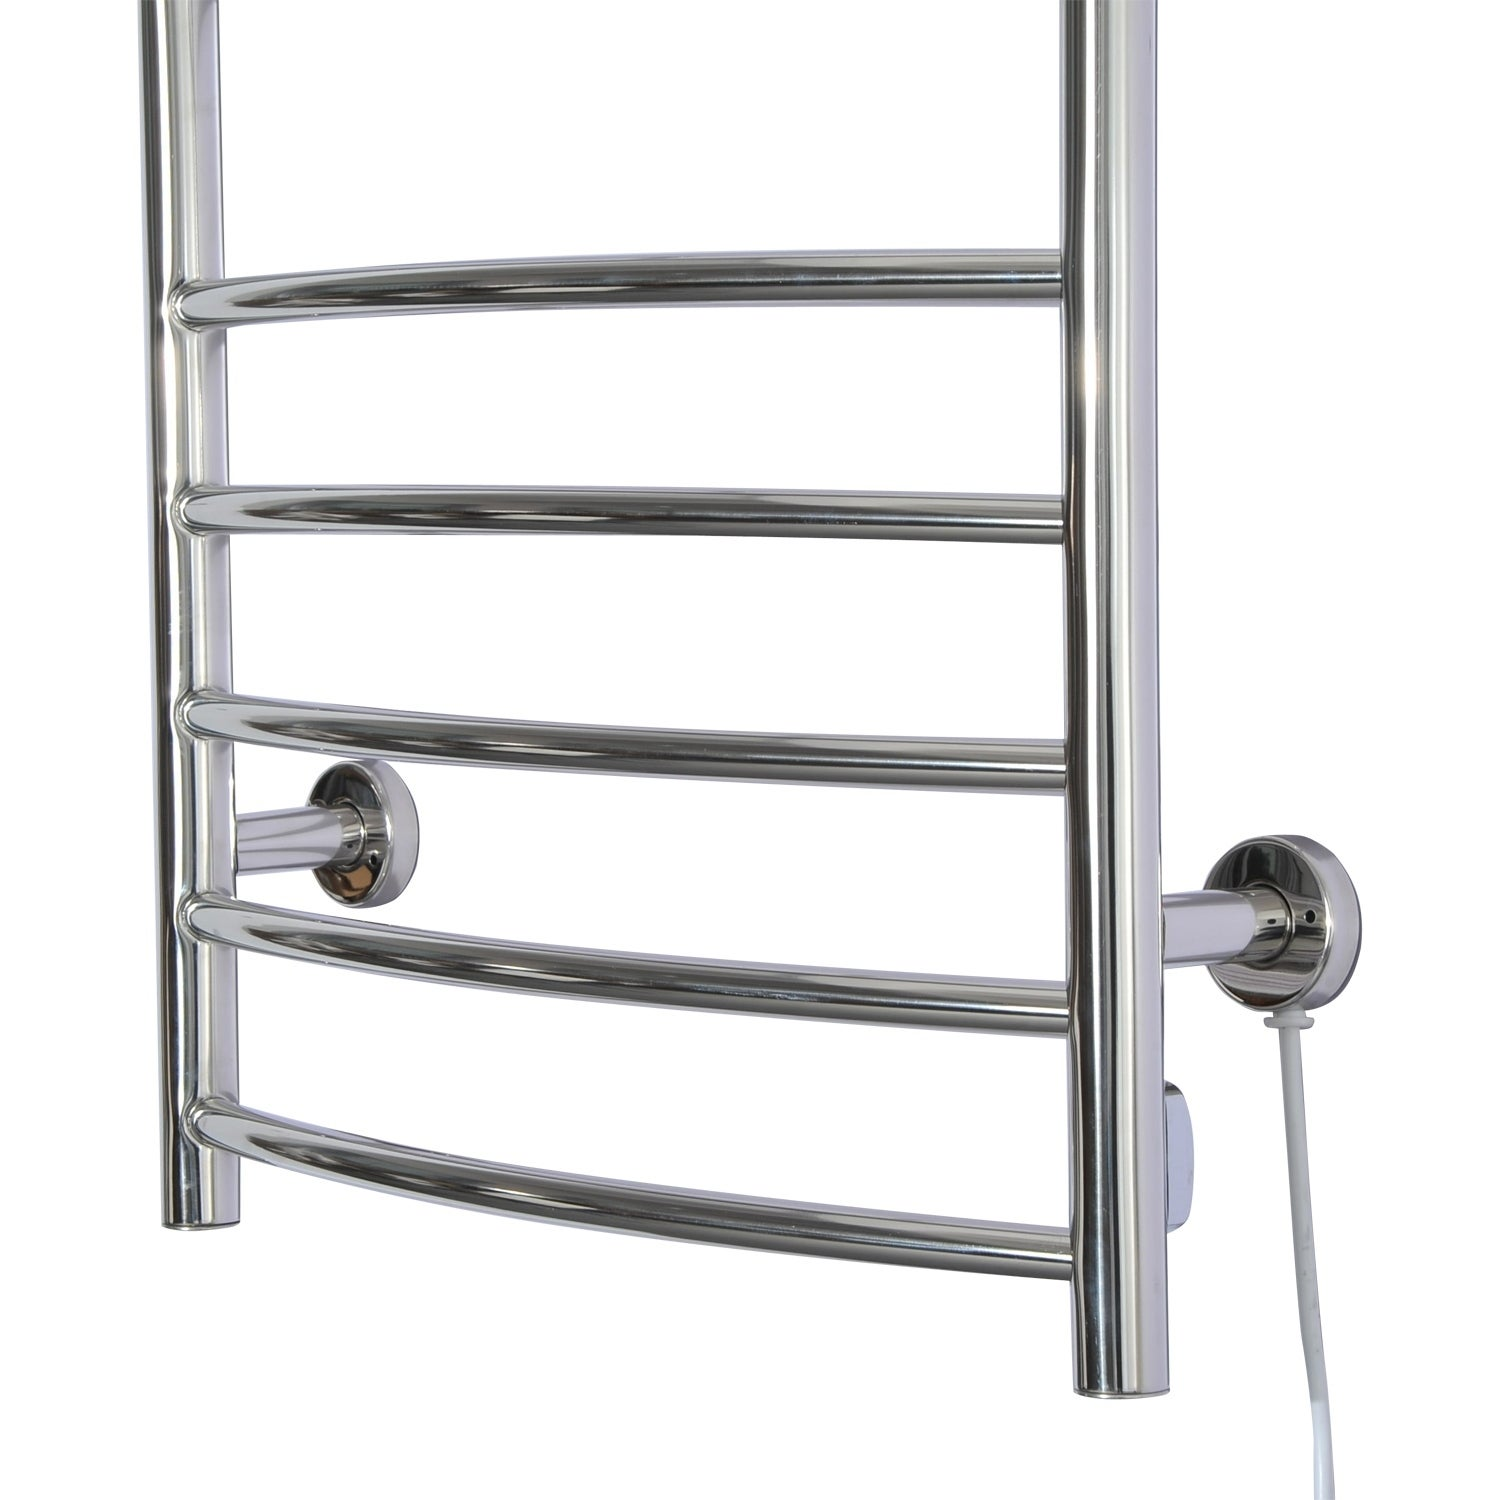 Homcom 10 Bar Curved Stainless Steel Wall Mounted Heated Towel Warmer Rack